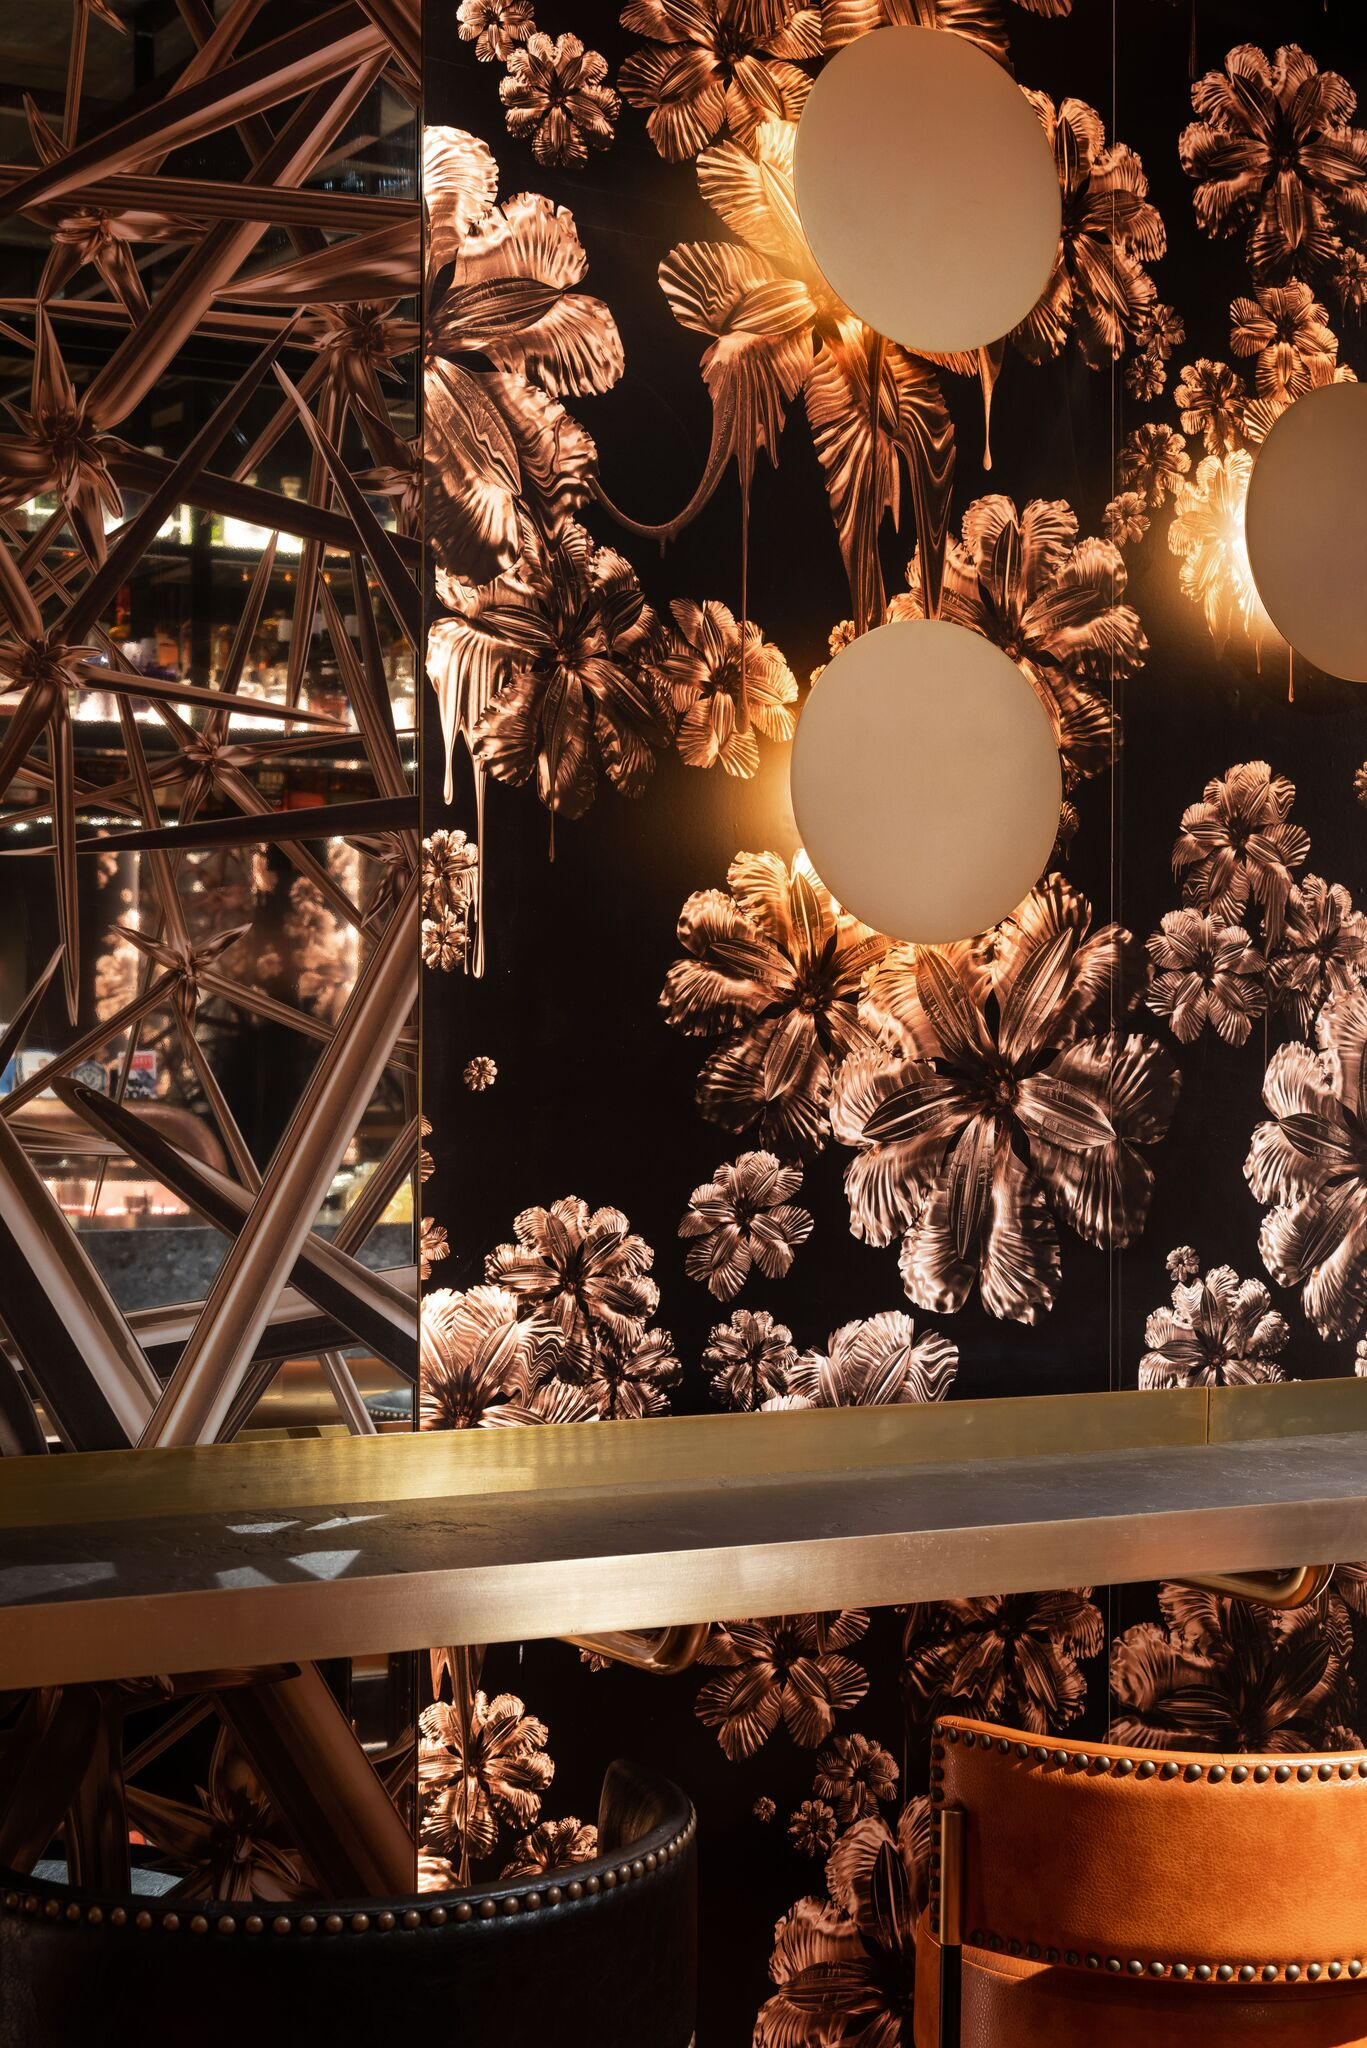 Gallery Of Qt Perth By Nic Graham Local Australian Hotel Architecture & Contemporary Interior Design Perth, Wa Image 8